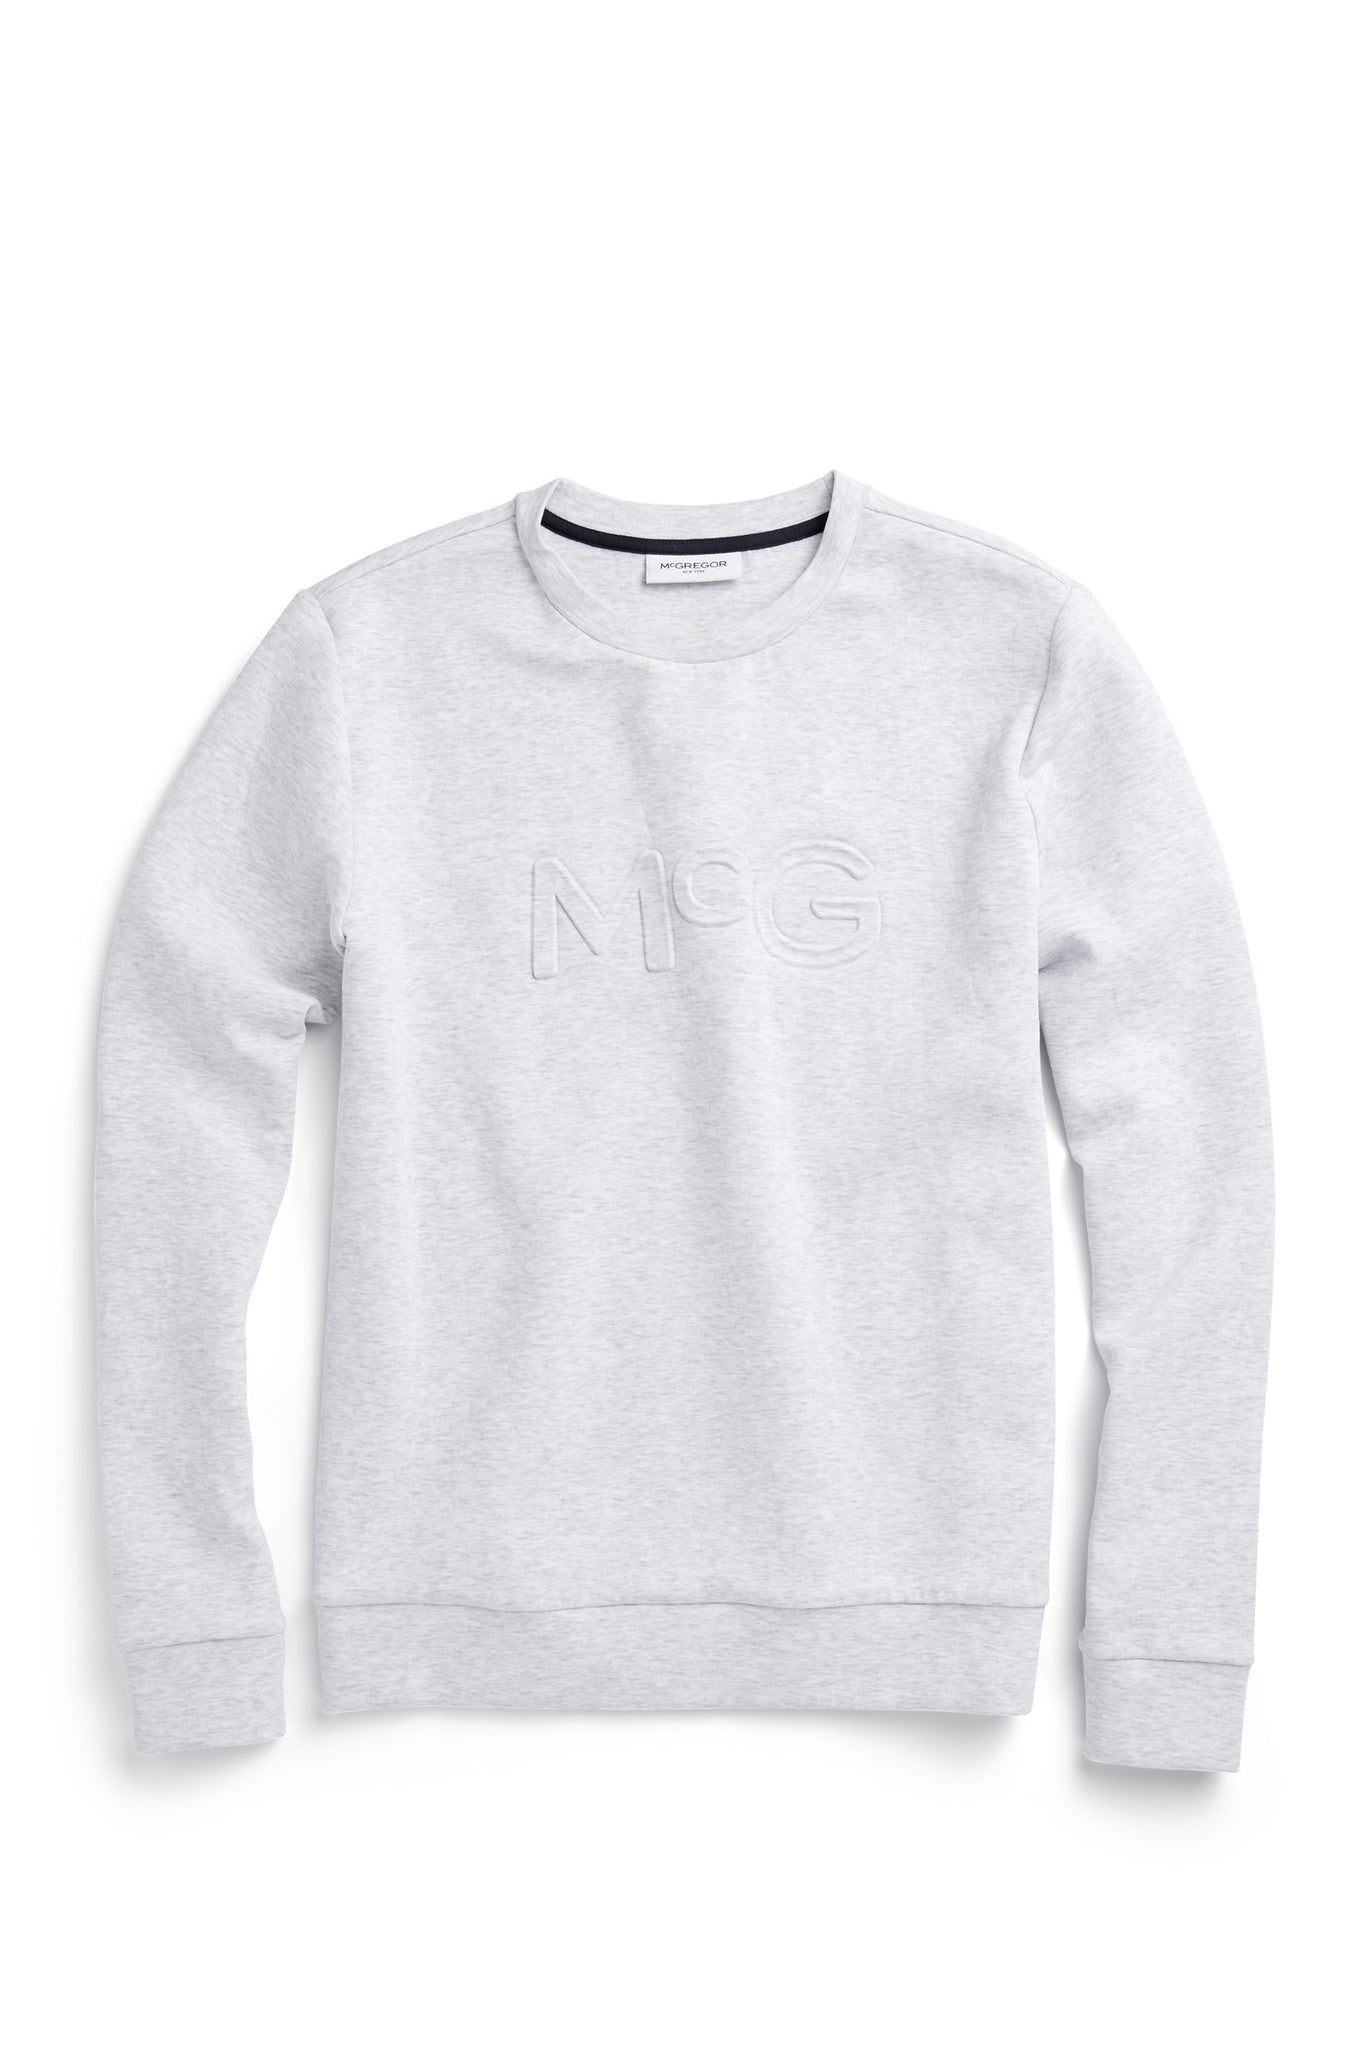 Cotton Sweat with McG logo